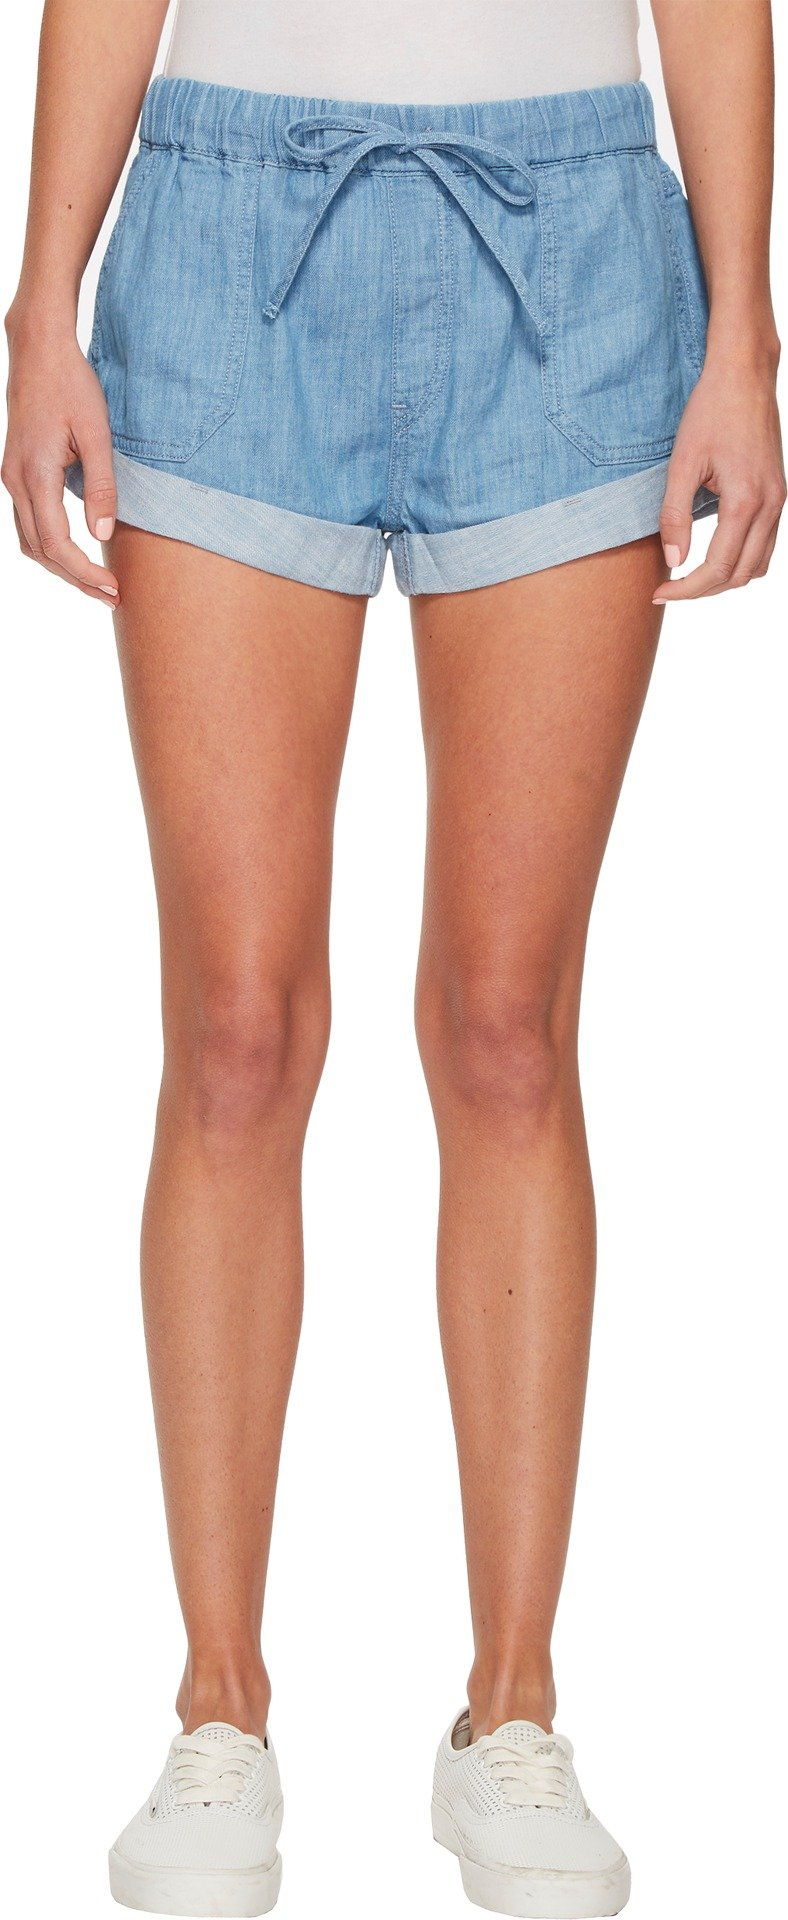 Volcom Junior's Sunday Strut Elastic Boyfriend Fit Short, Light Blue, M